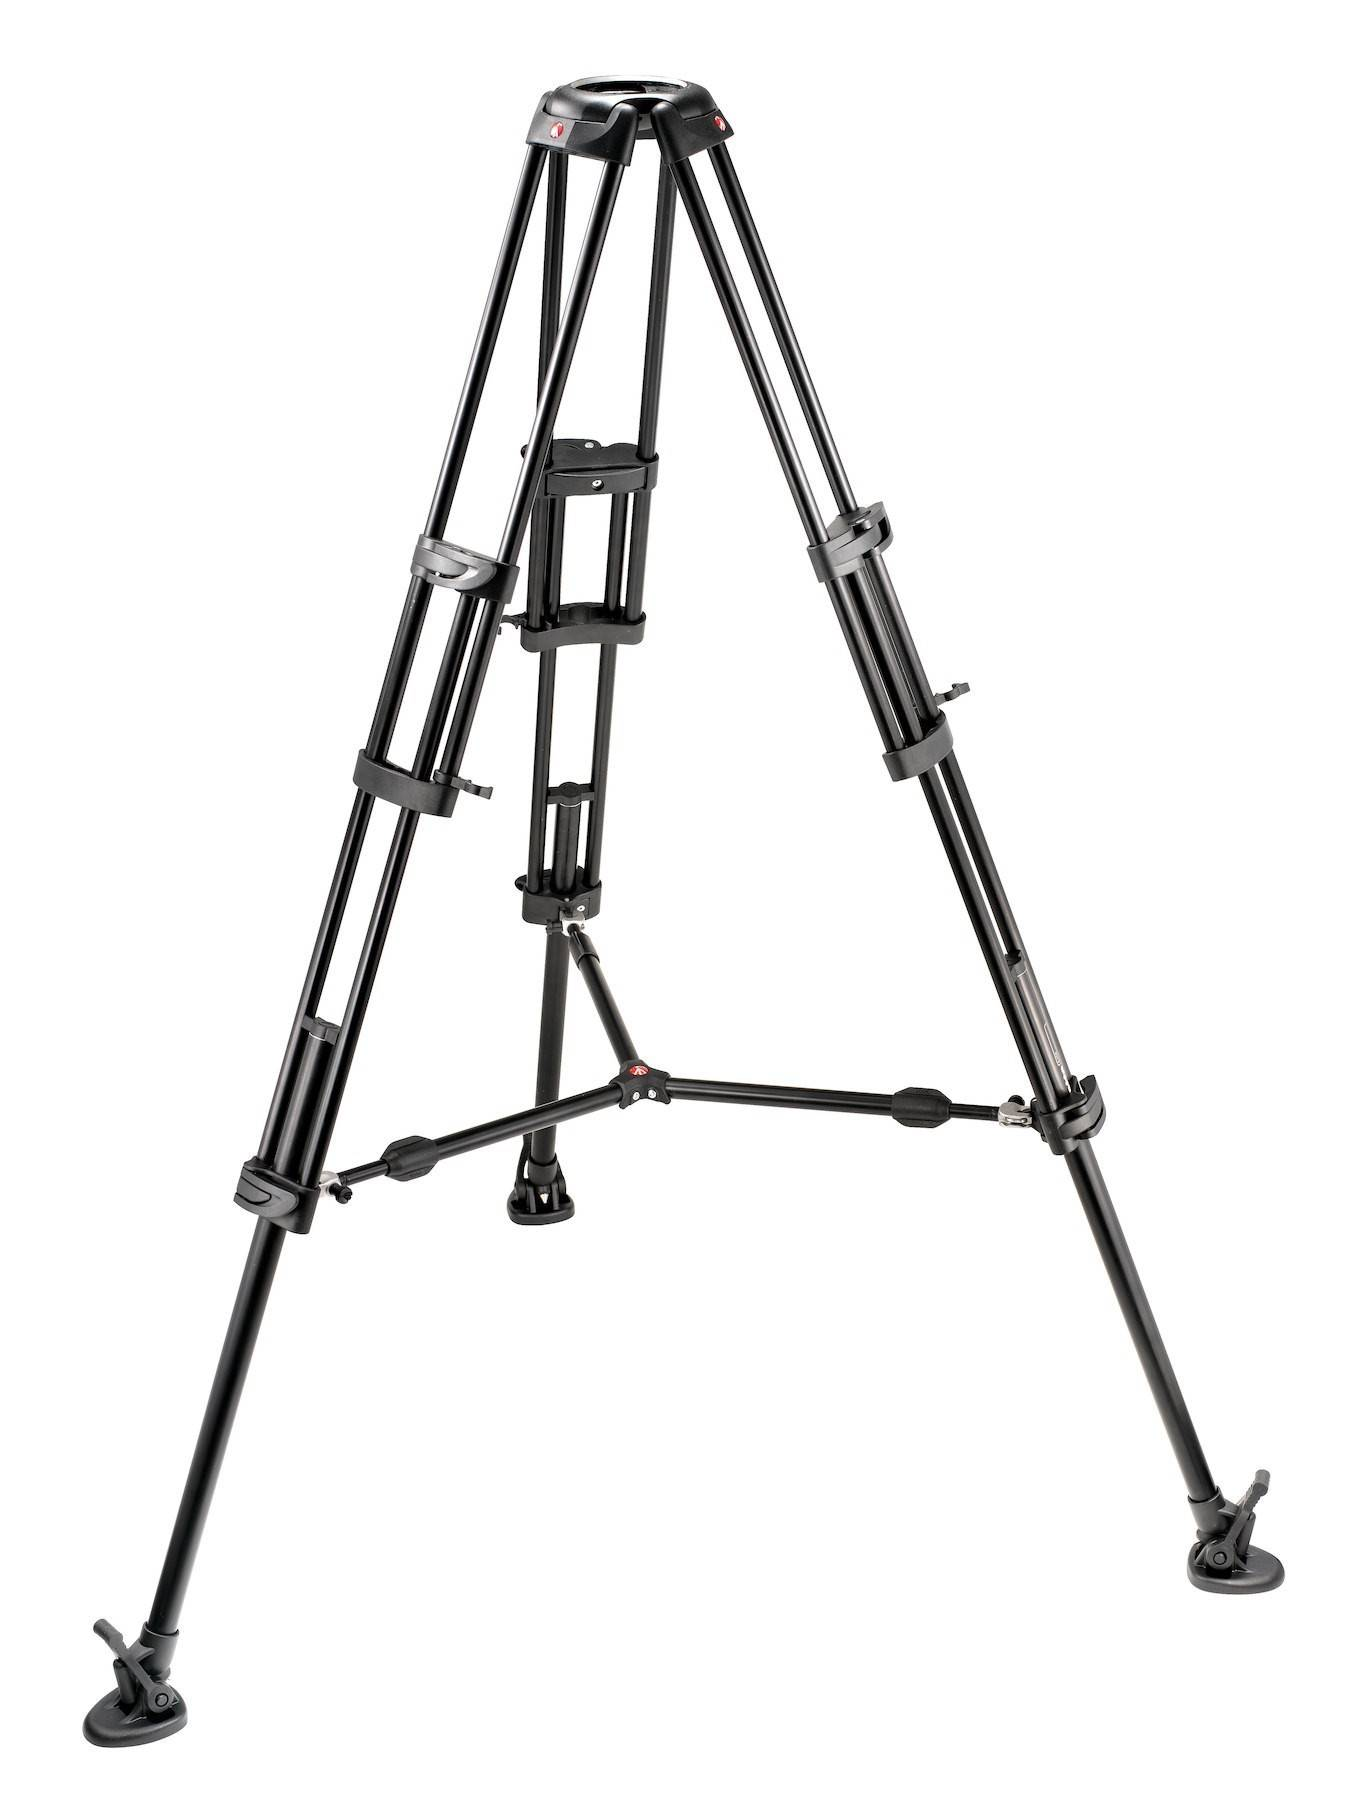 Manfrotto 545B Pro Alu Video Tripod with 2-Stage Tandem Legs